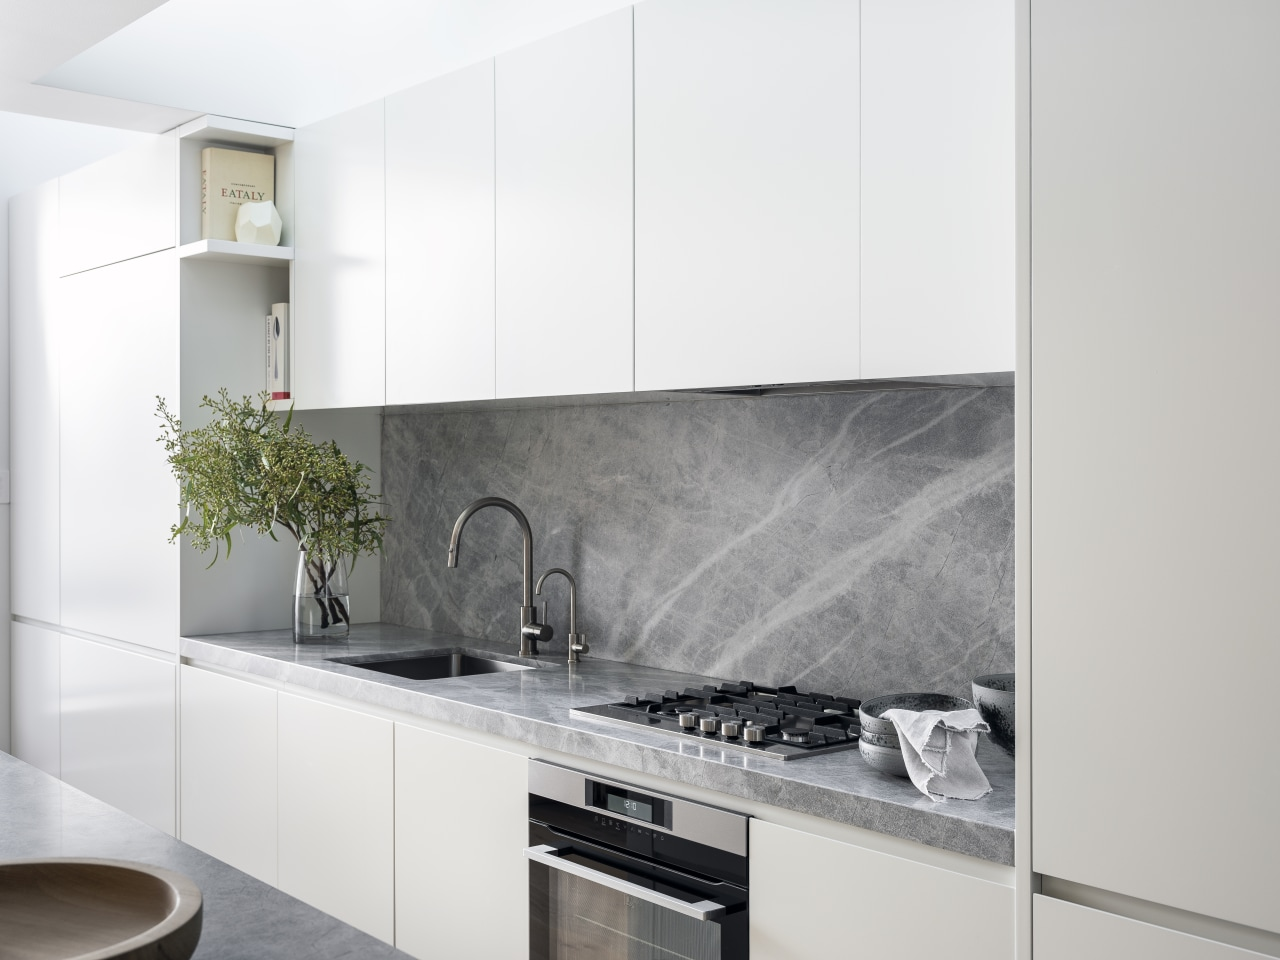 This white kitchen's benchtops and splashback are in